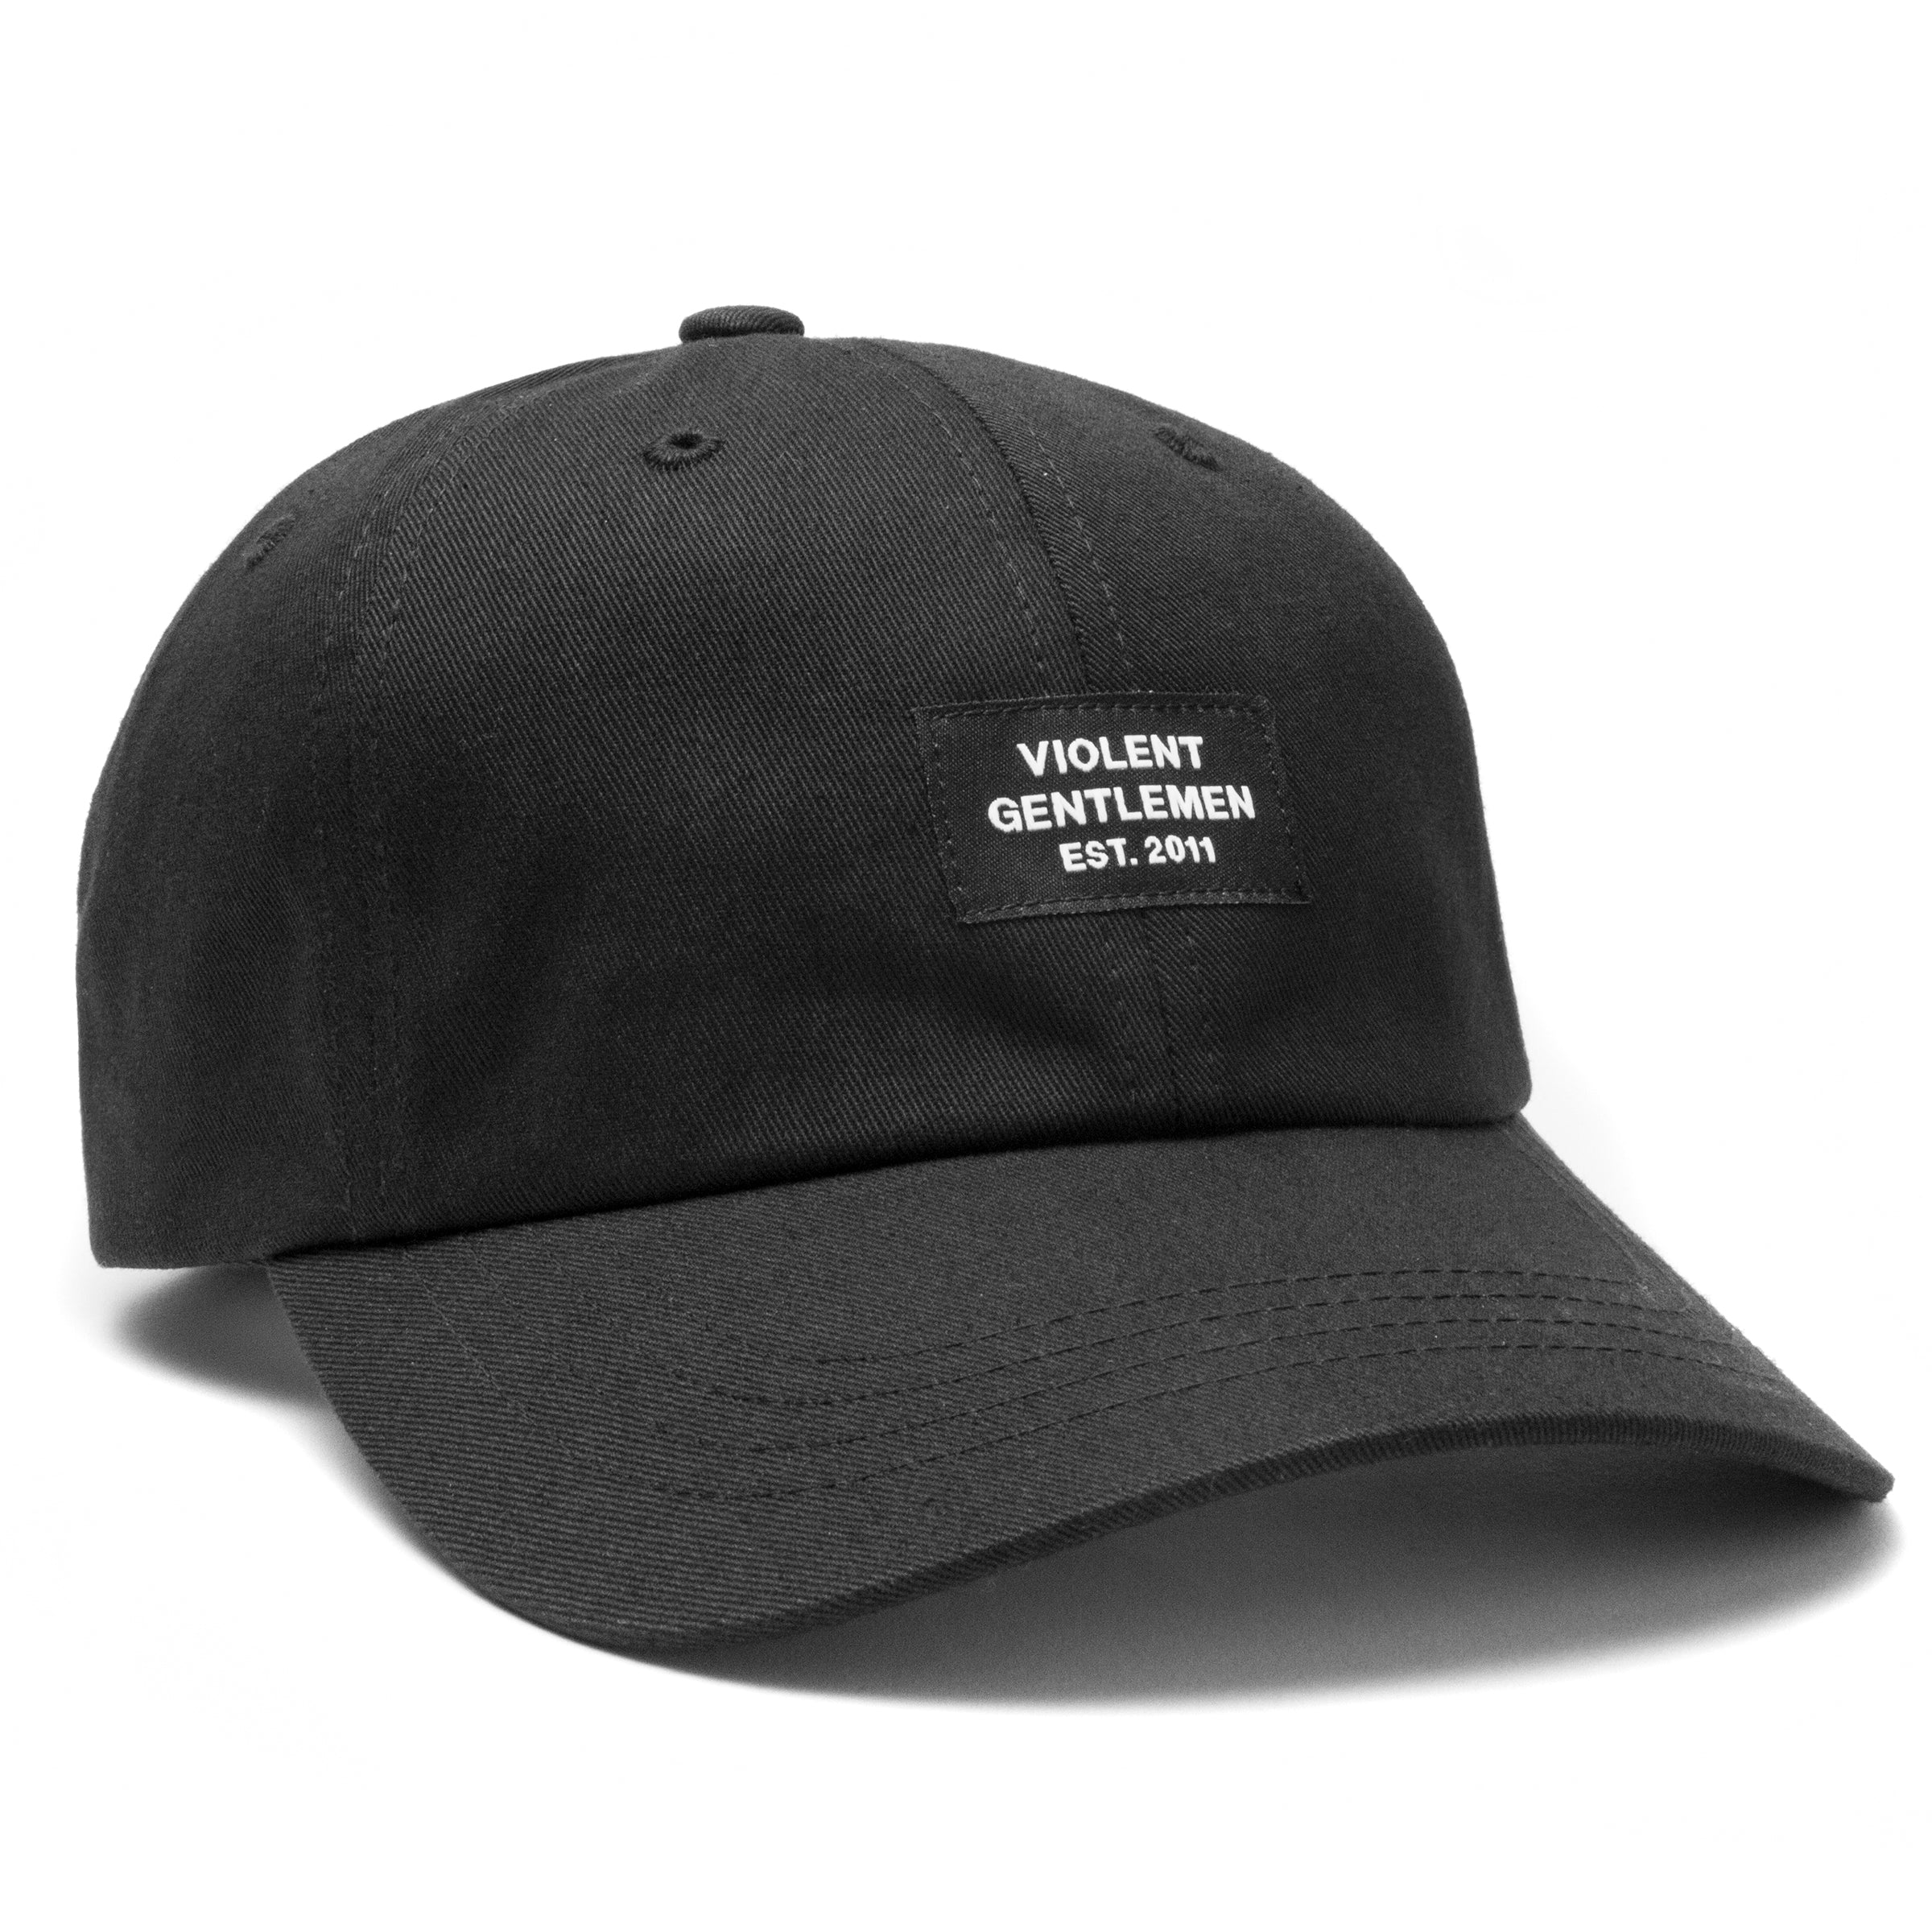 2115e088cd2 Lemieux Dad Hat - Black - Hats - Violent Gentlemen